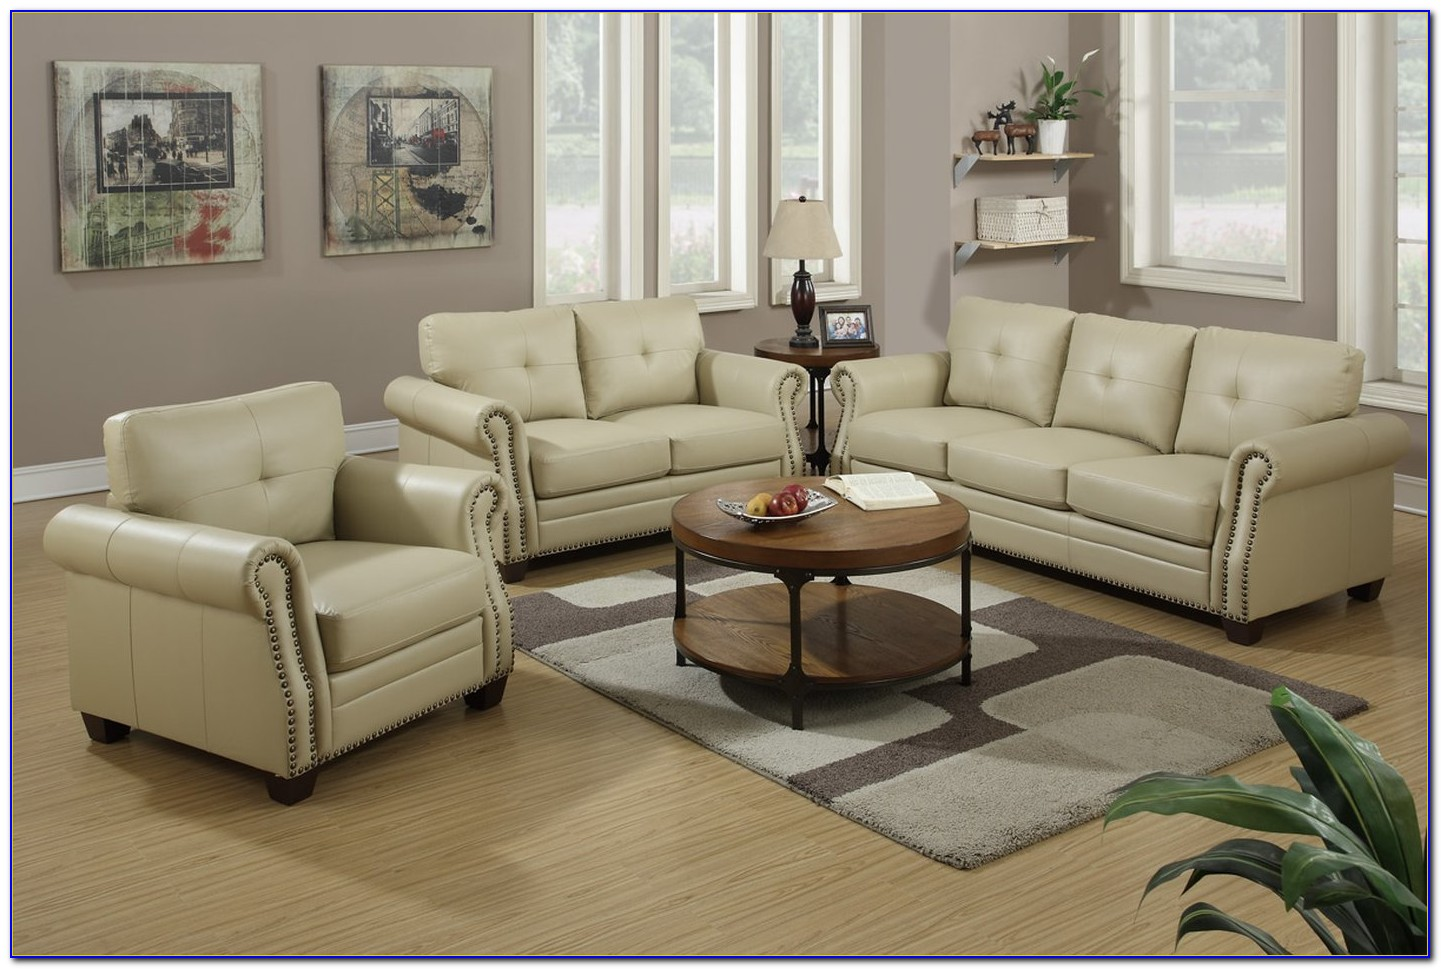 3 Pcs Sofa Loveseat And Chair Set